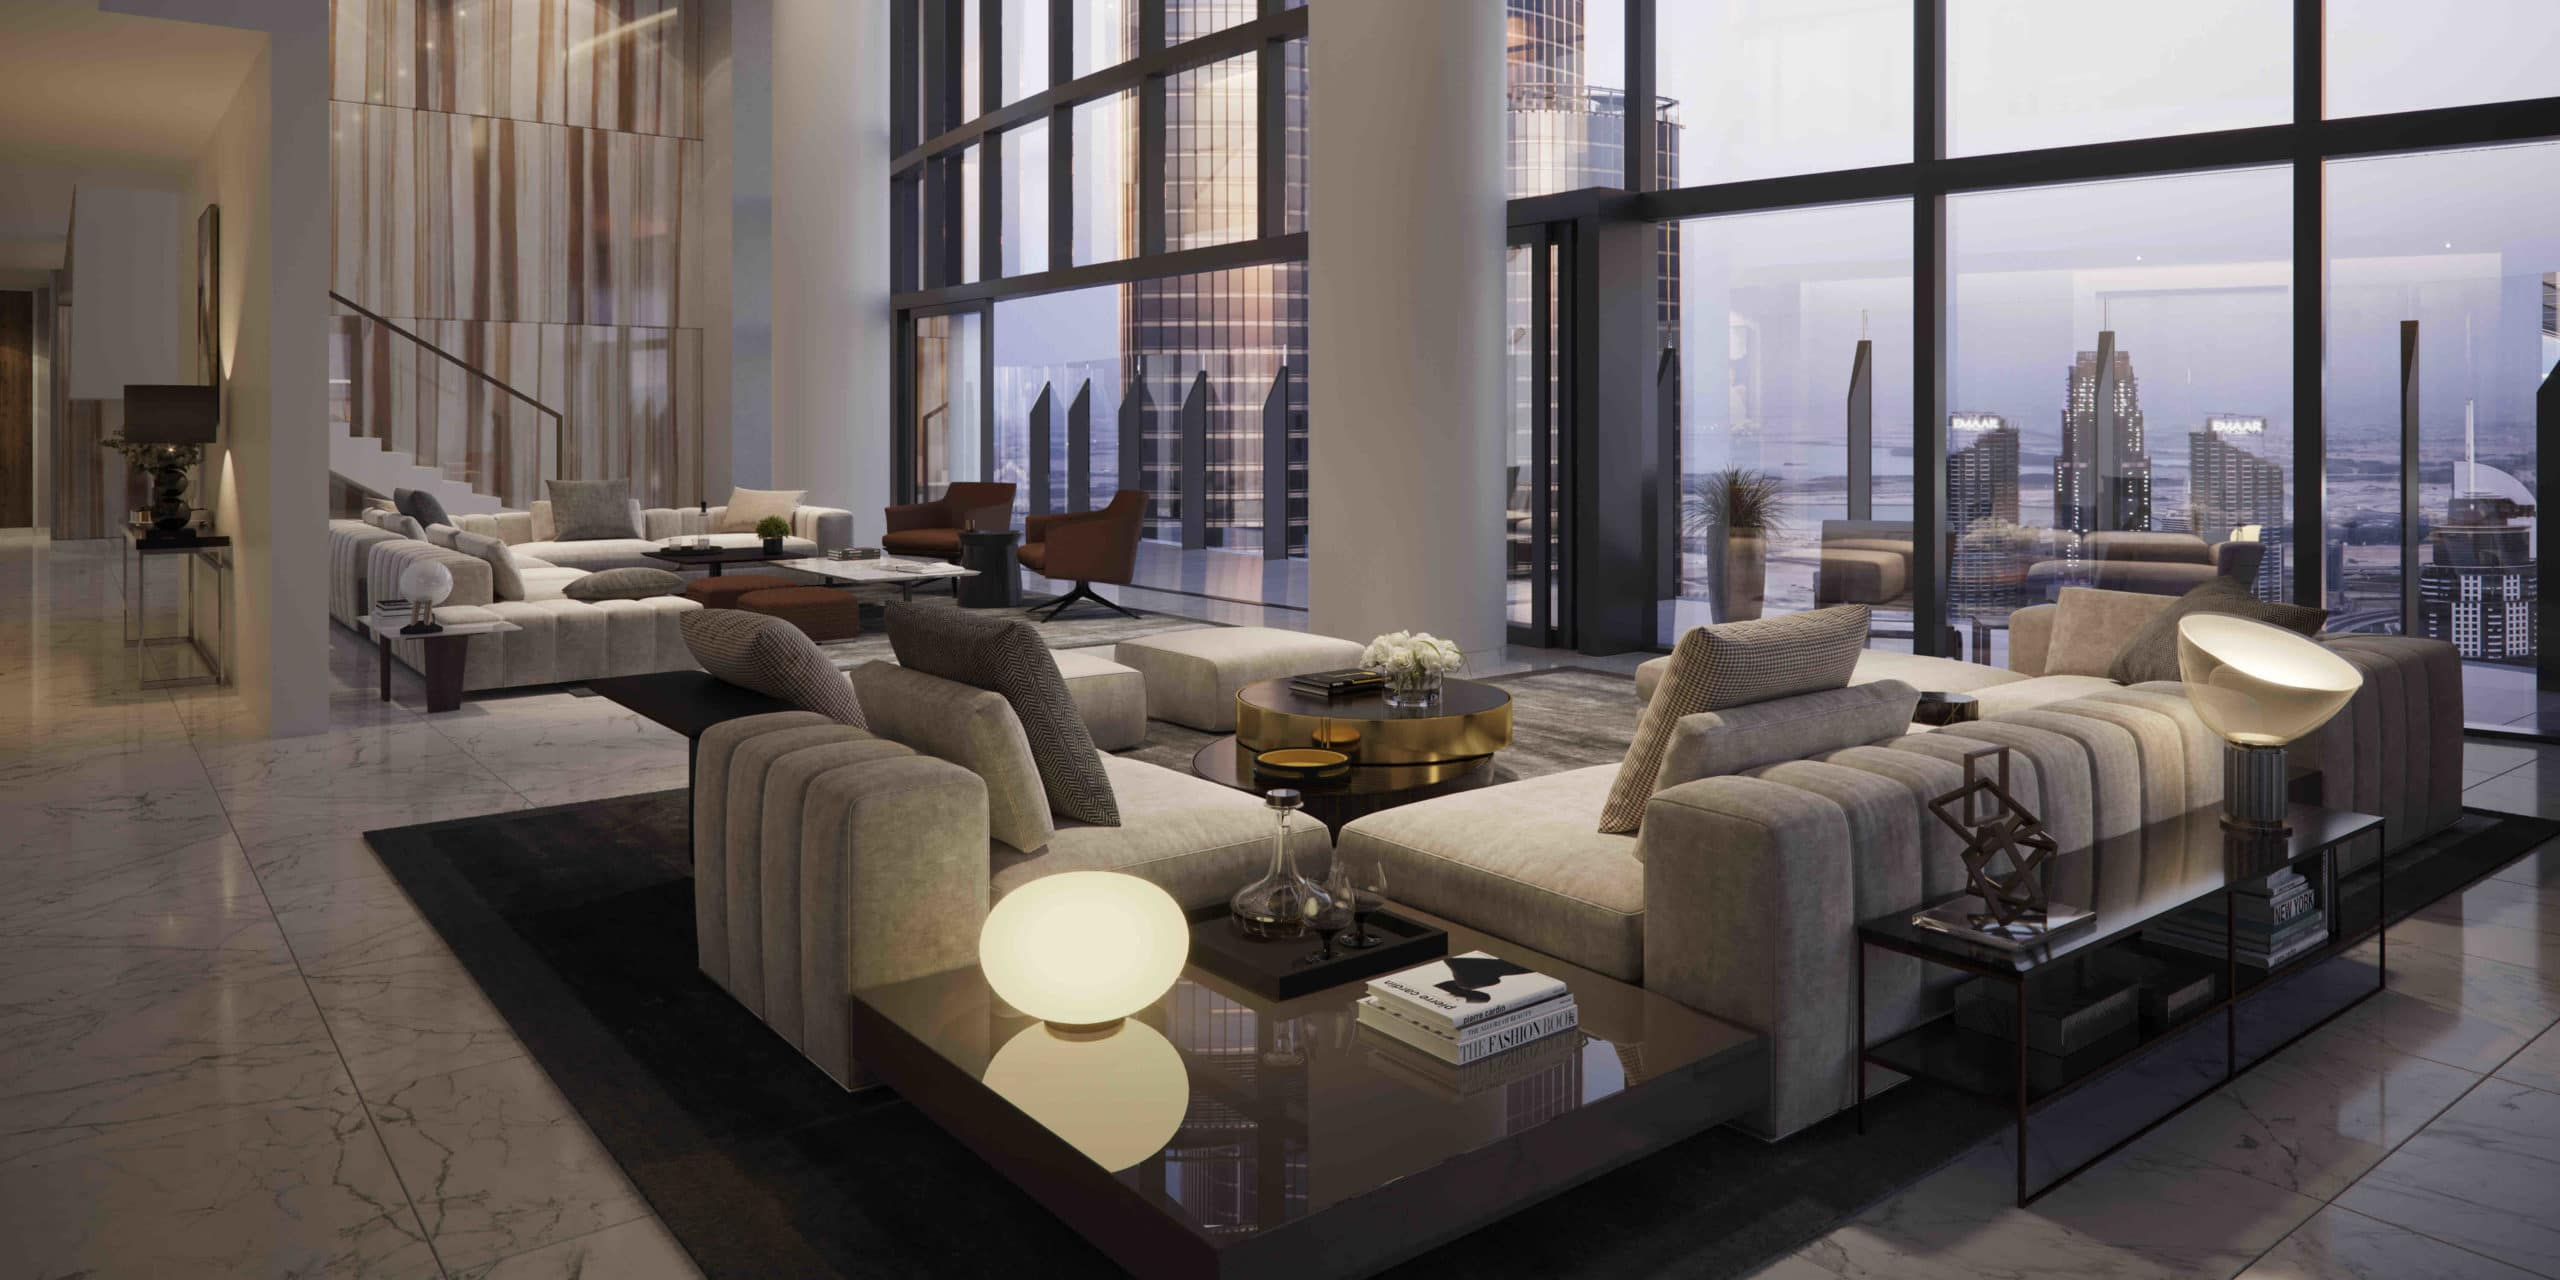 Living room at Il Primo luxury condominiums in Dubai. Large room with pillars, high ceilings, and floor-to-ceiling windows.